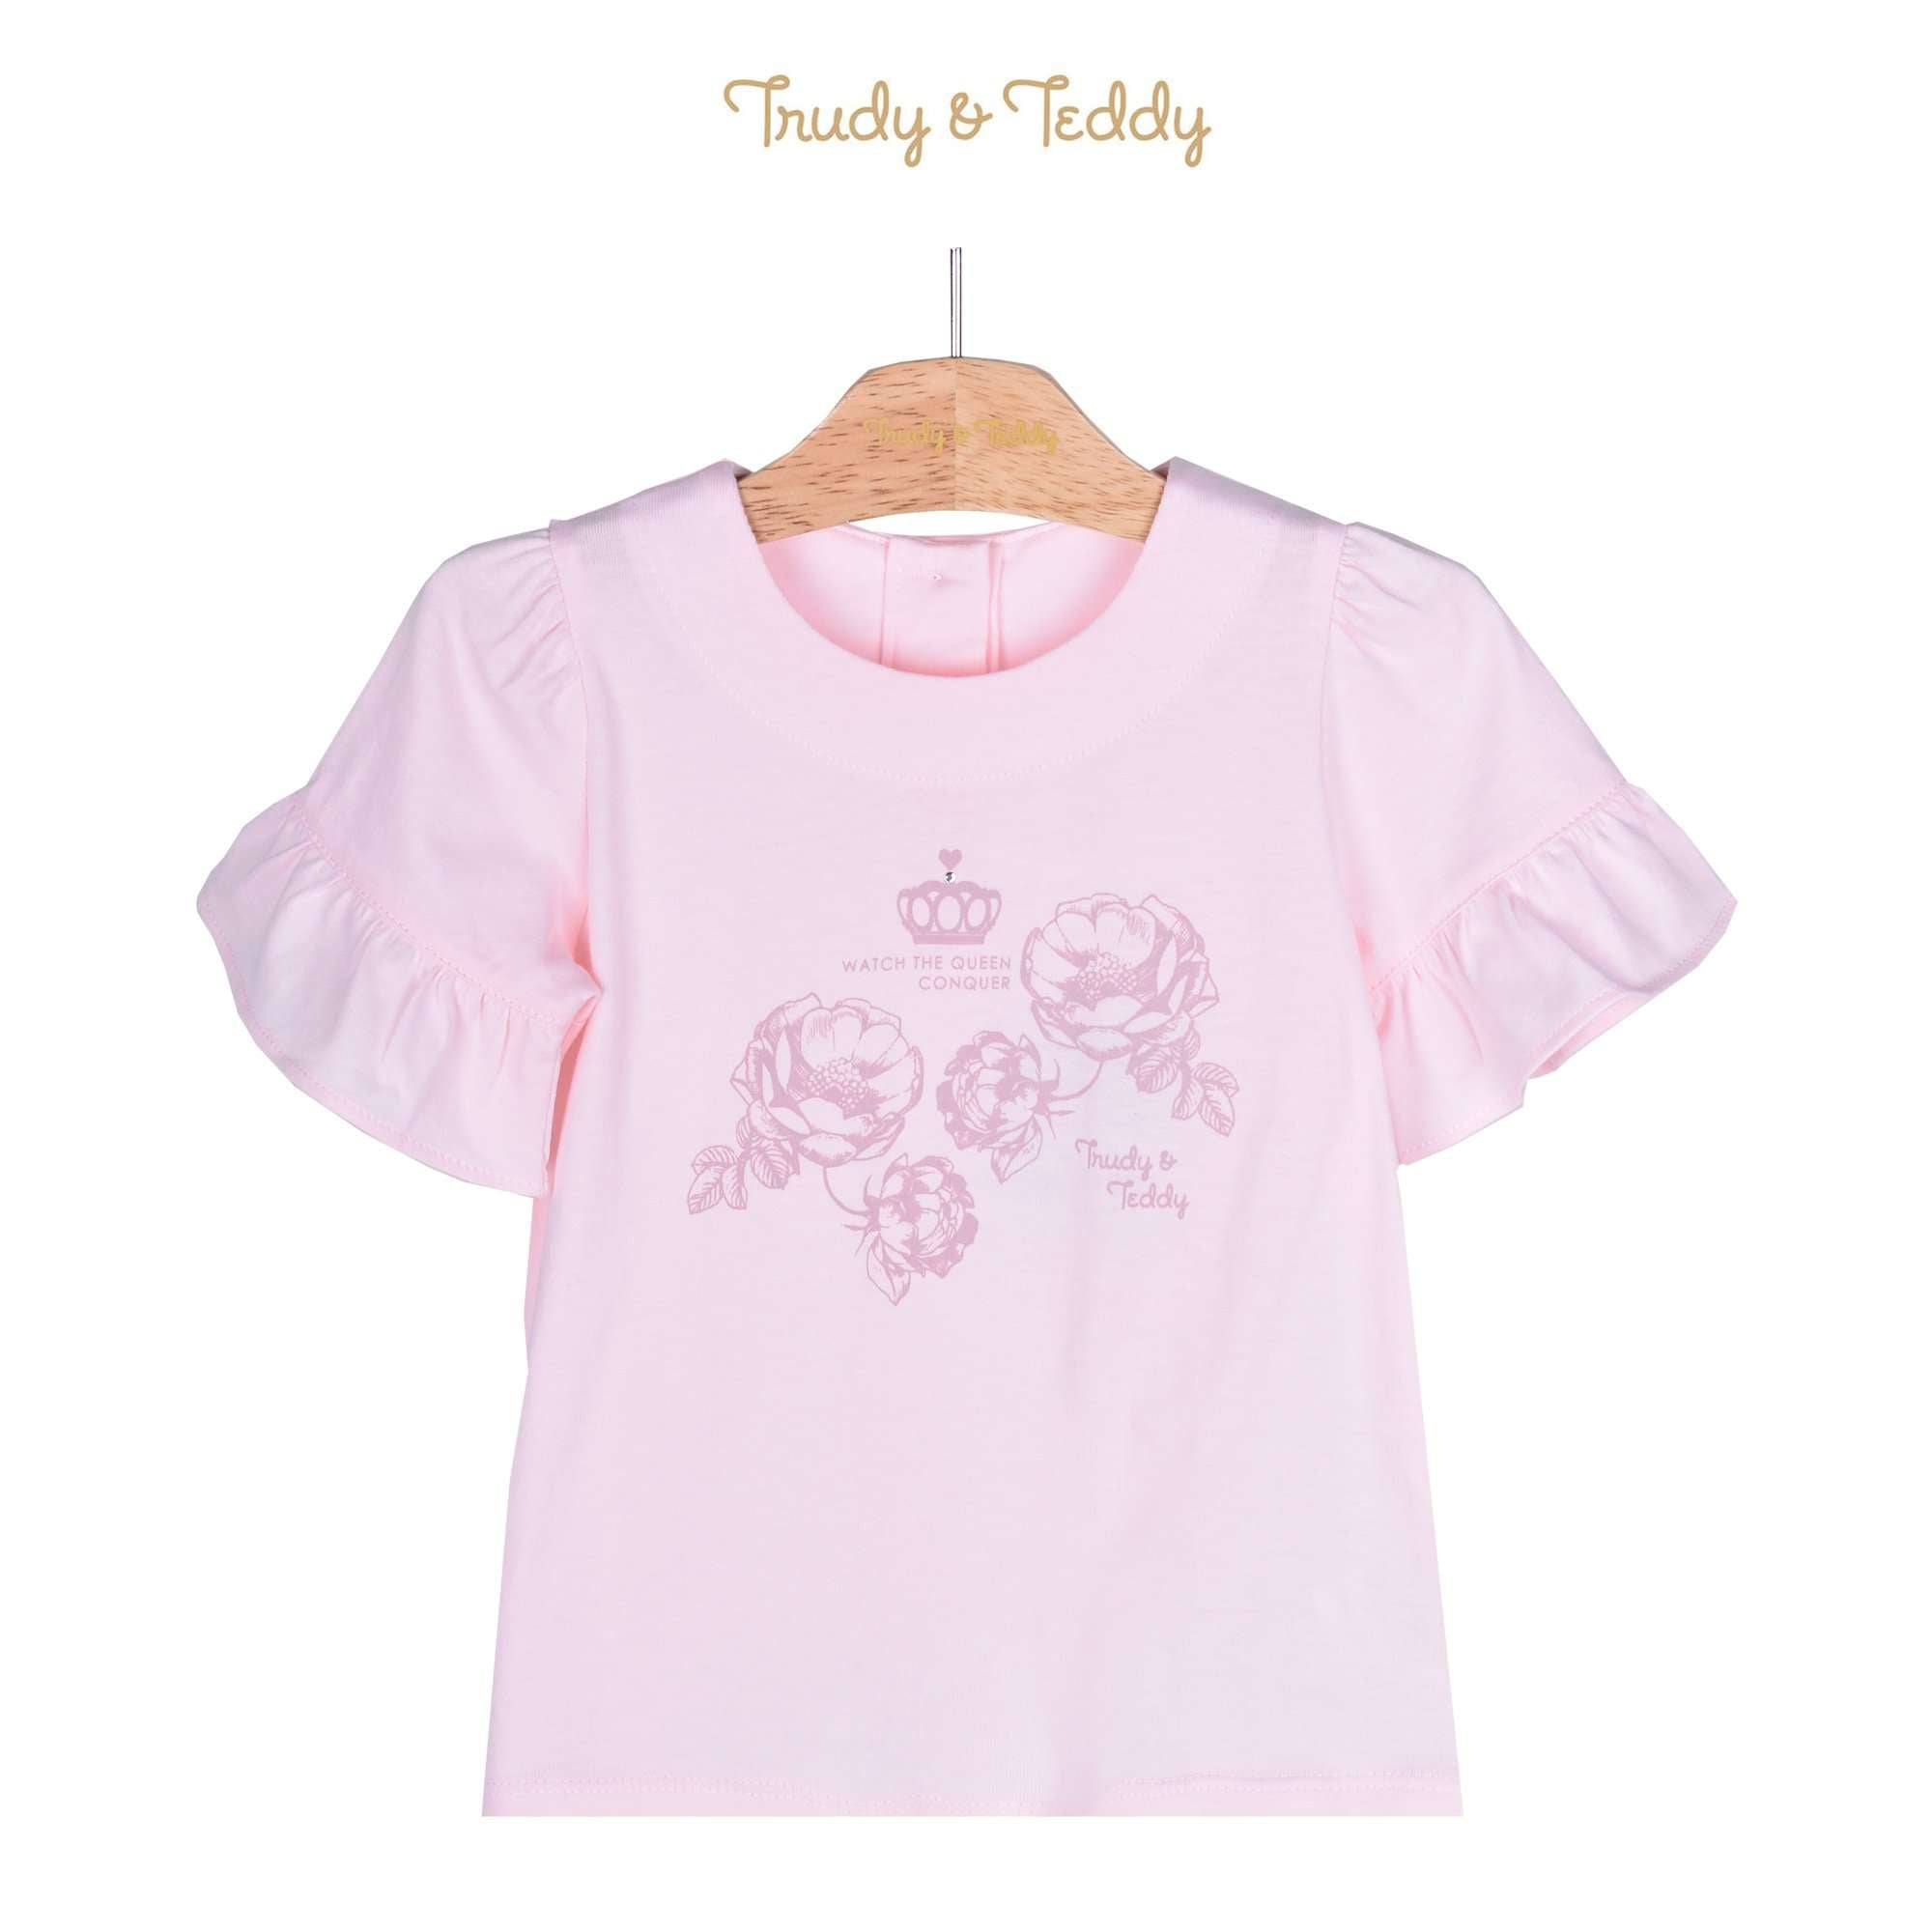 Trudy & Teddy Toddler Girl Short Sleeve Tee 815146-111 : Buy Trudy & Teddy online at CMG.MY